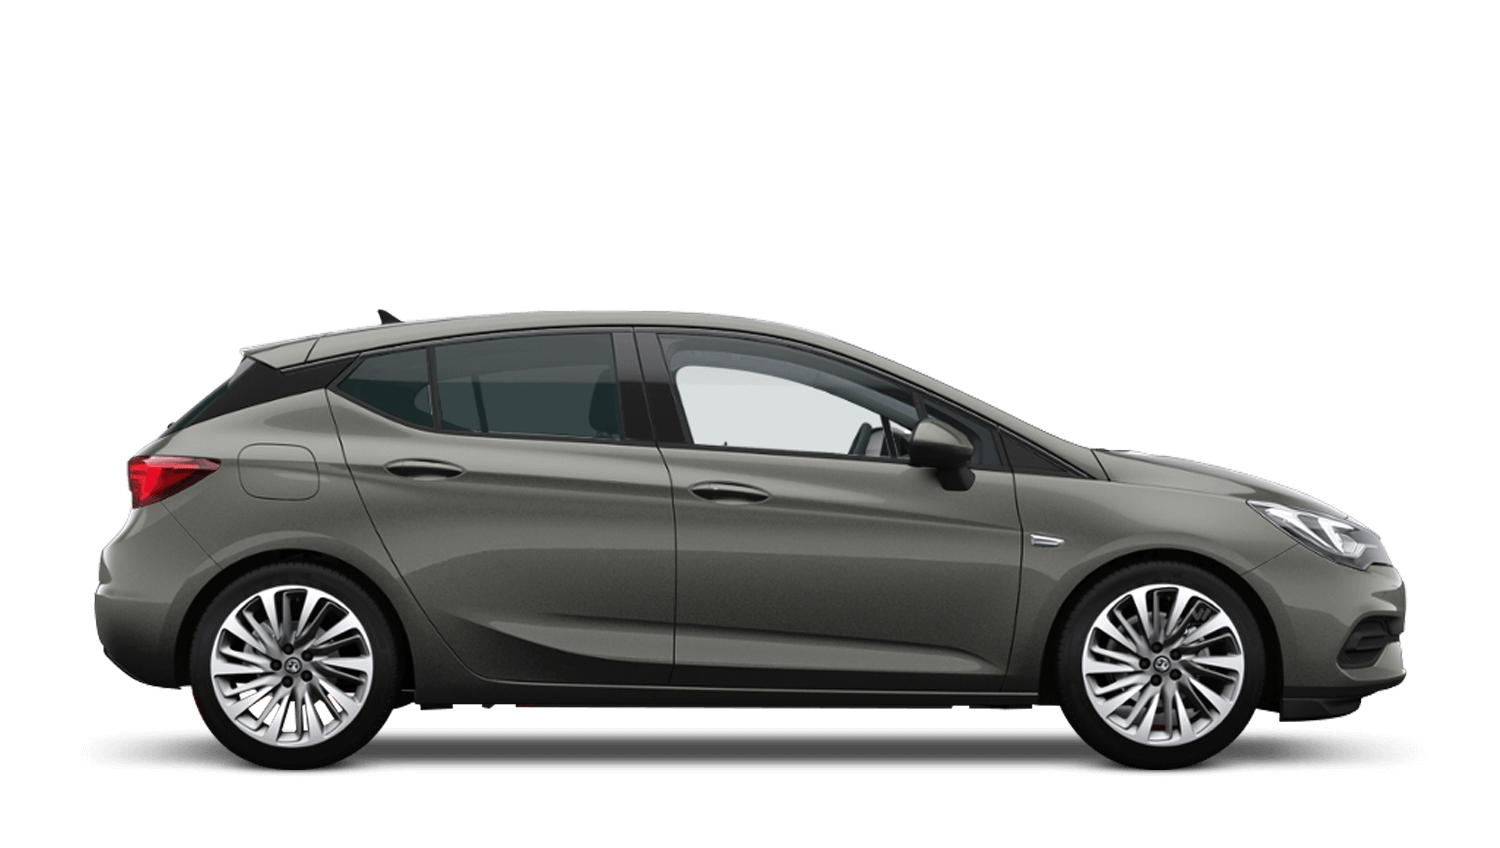 Cosmic Grey (Metallic) New Vauxhall Astra